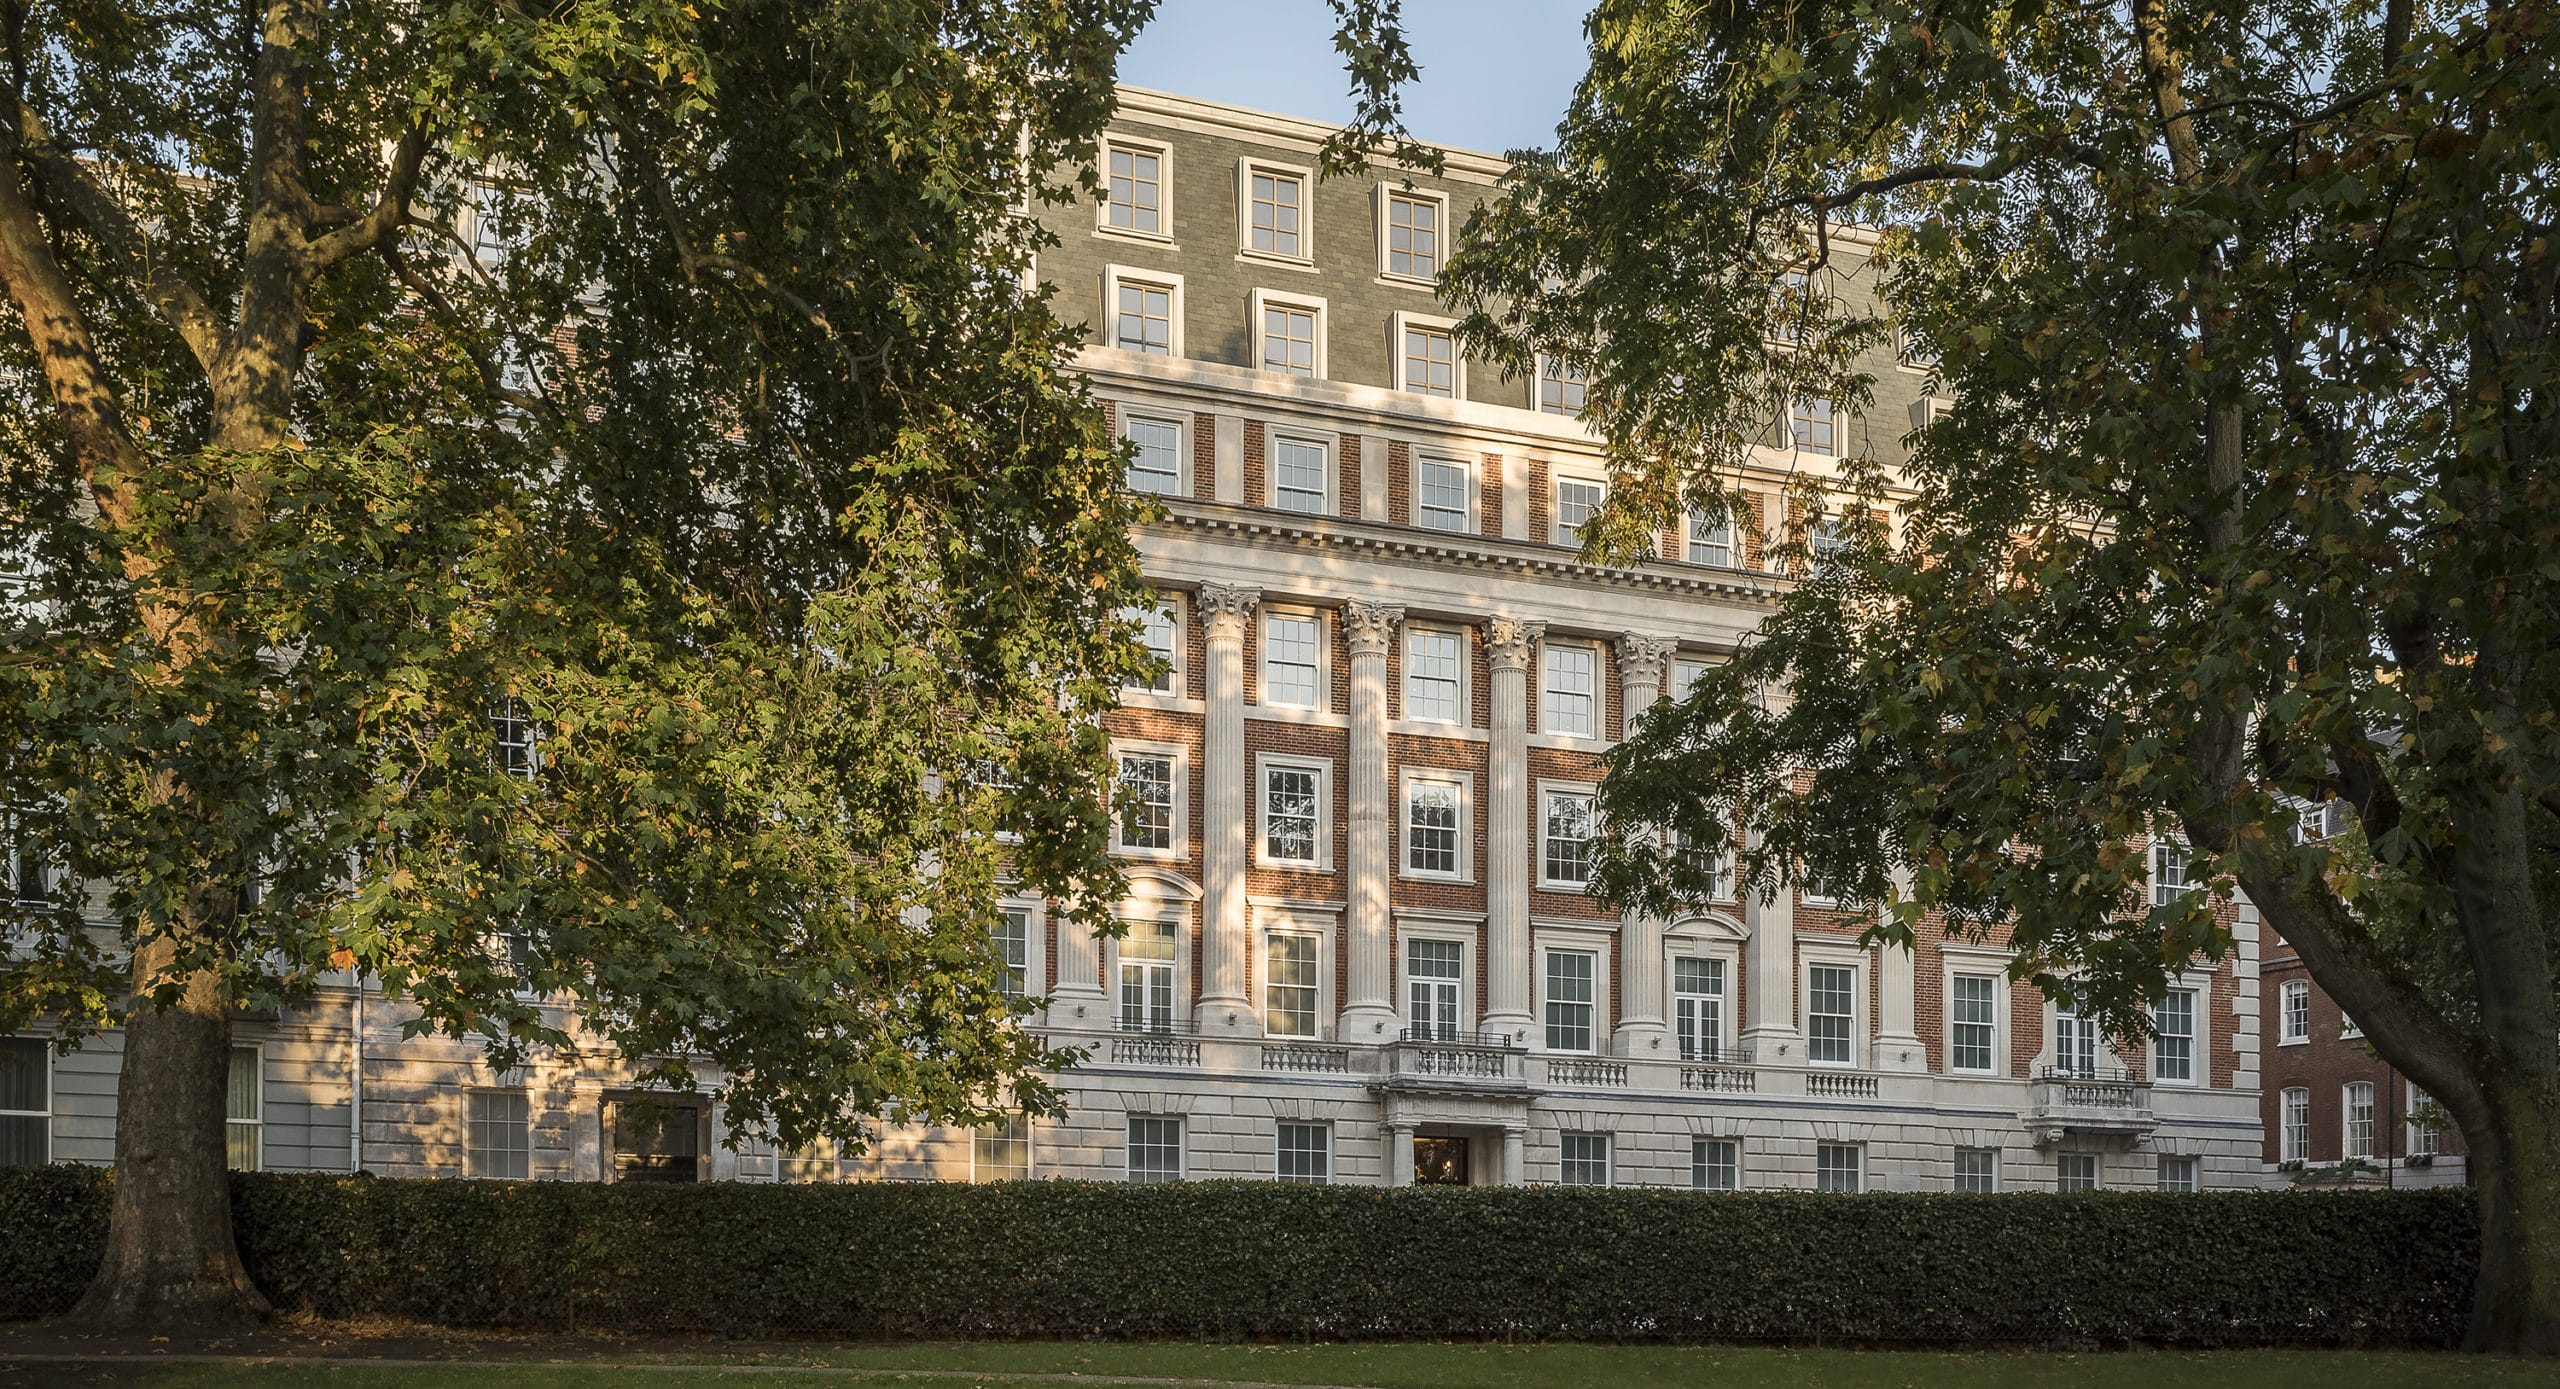 Exterior of 1 Grosvenor Square in London. Former US Embassy building framed by two trees with brick facade and white accents.